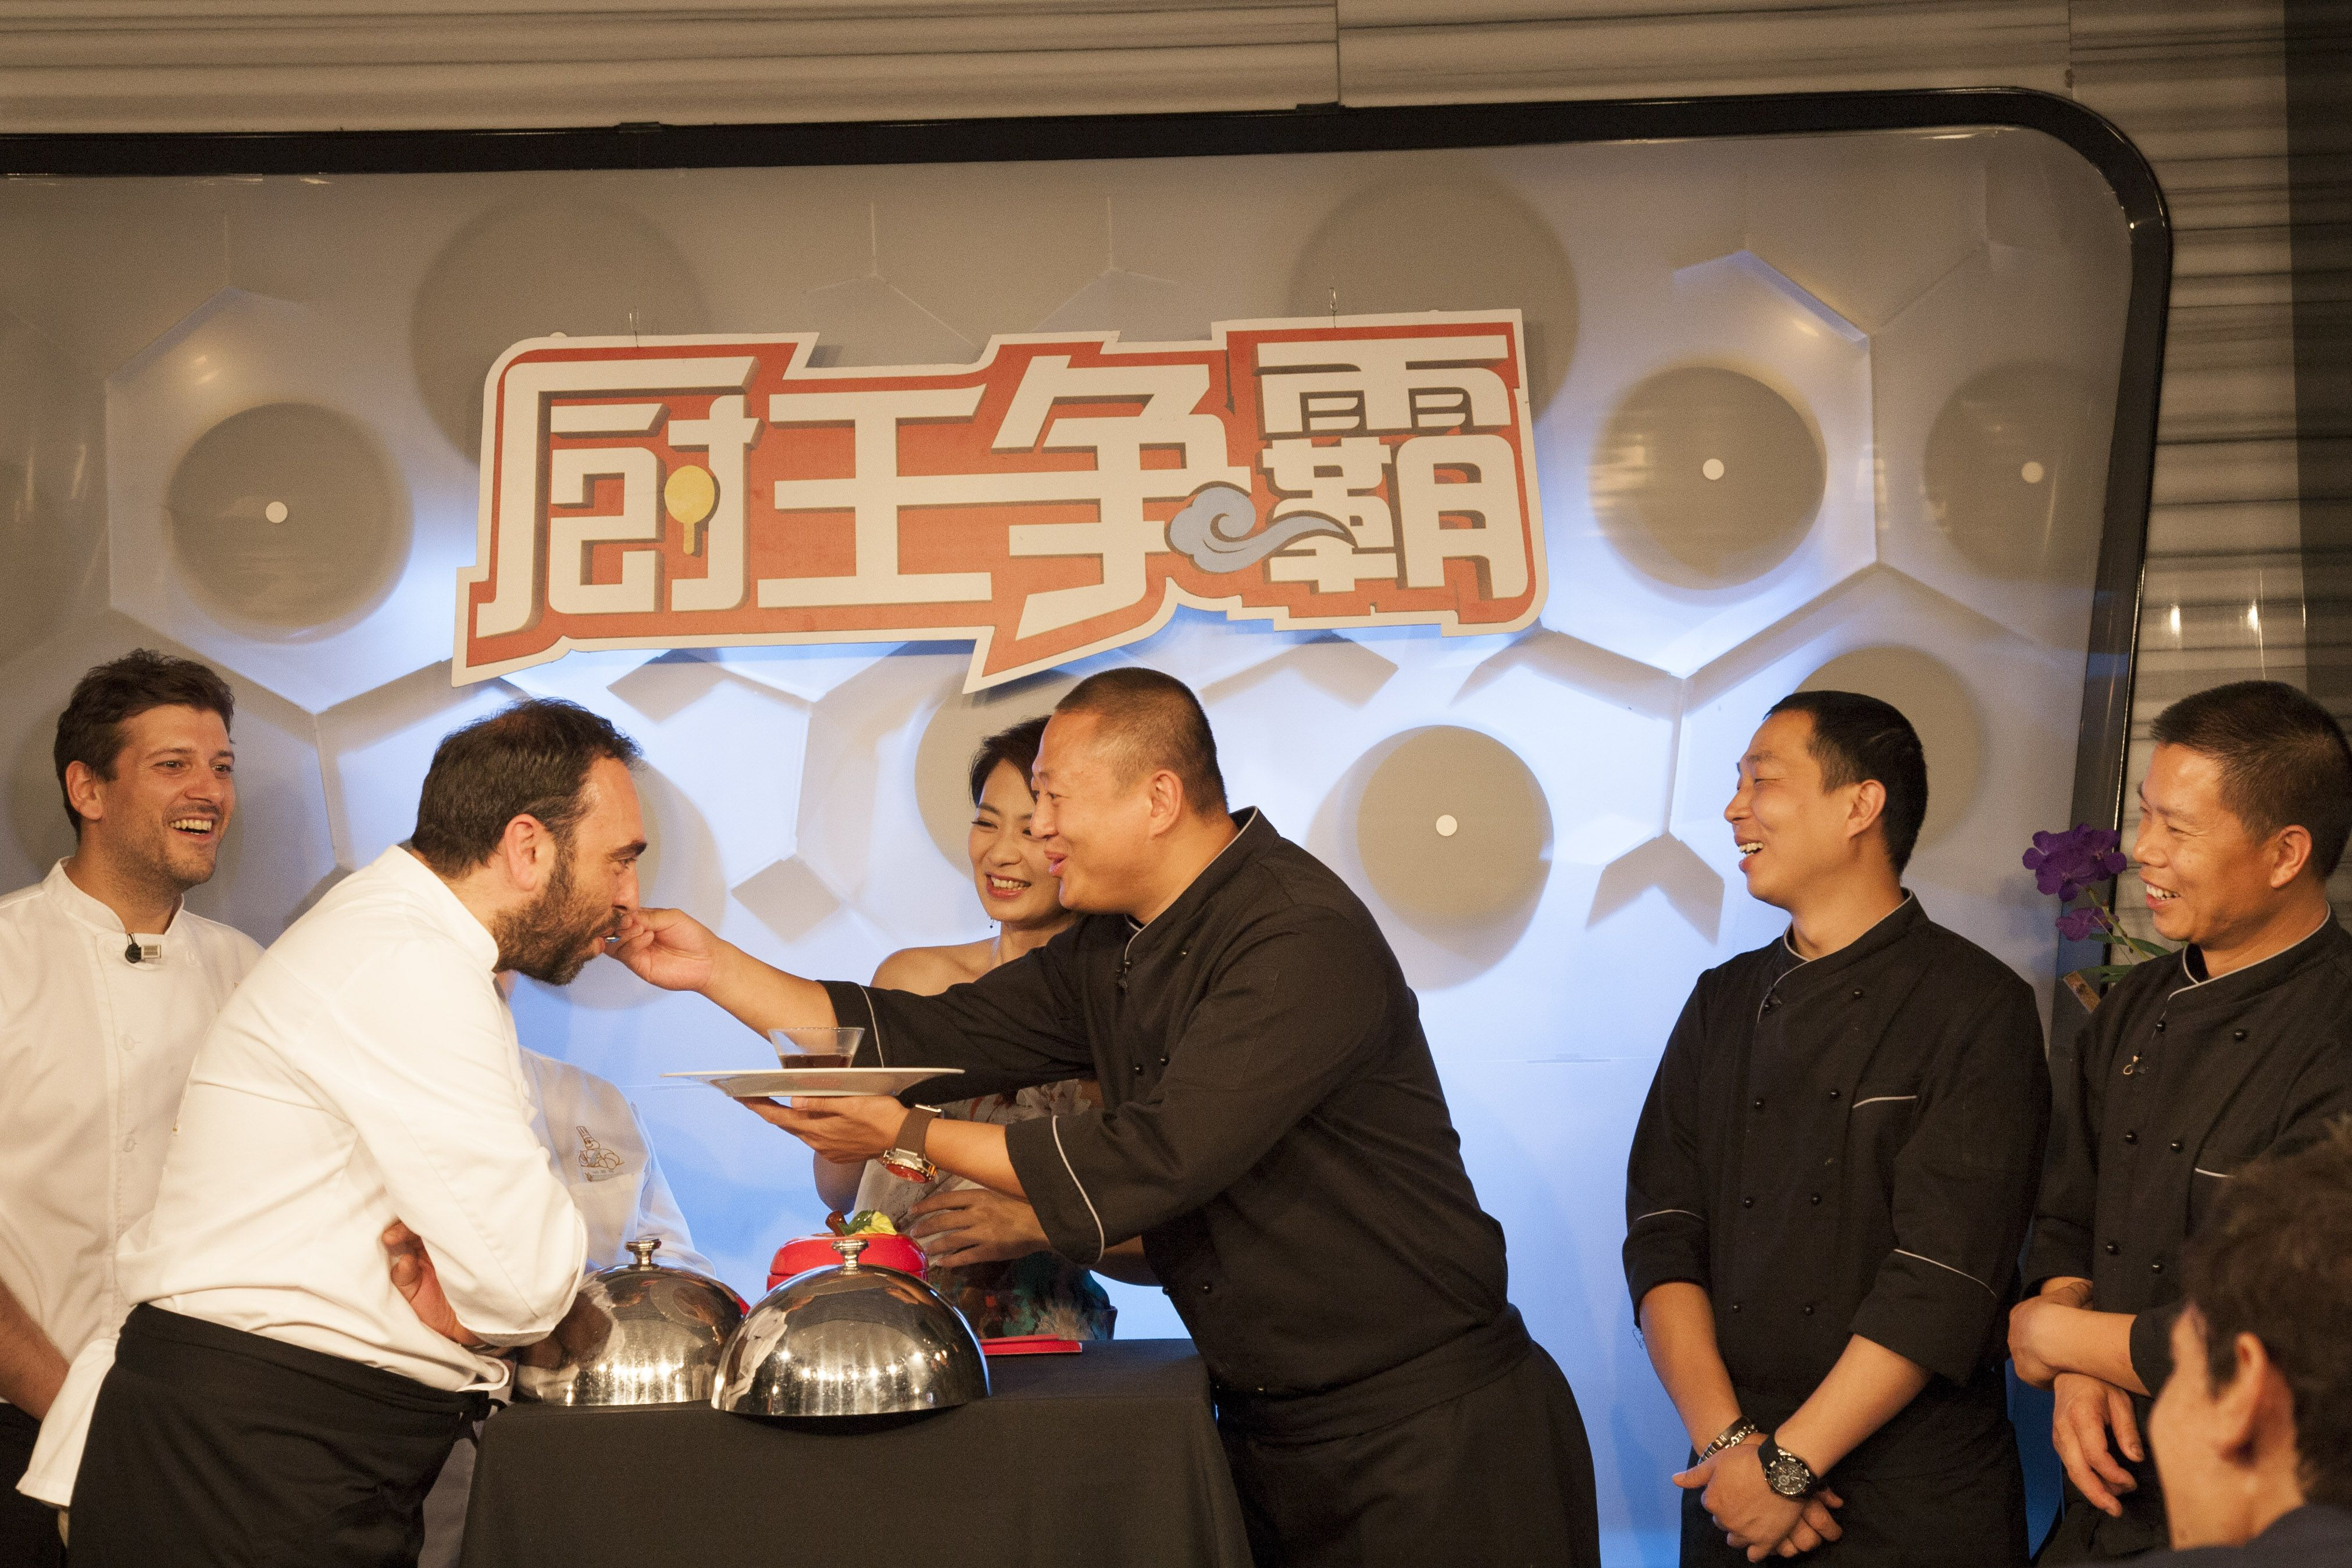 The 2nd edition of Greatest Chef China-Italy Edition, born by a partnership between #TriumphGroupInt and Tecnomovie (Maria Cicorella vs Gao Hai 高海): http://www.triumphgroupinternational.com/triumph-group-international-for-greatest-chef-china-italy-edition/